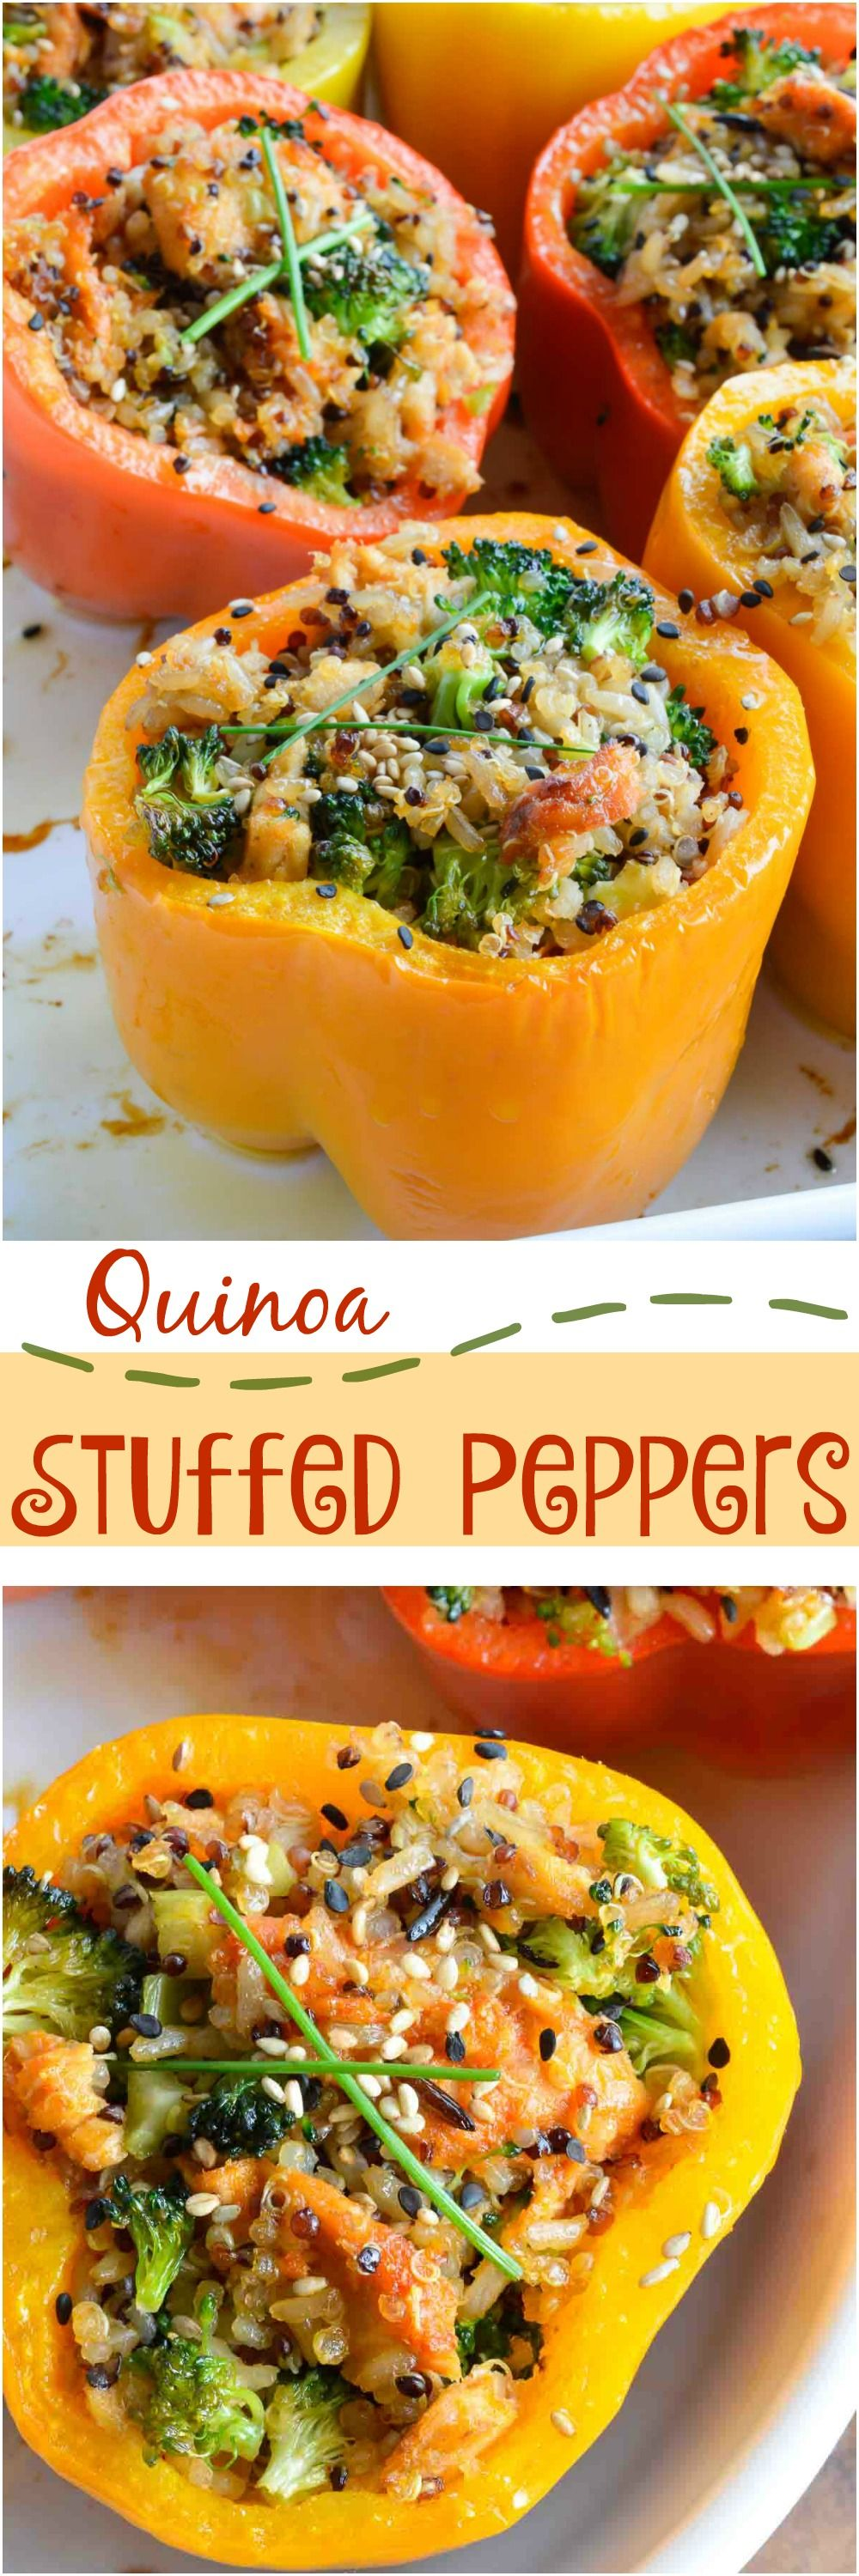 This dinner recipe is healthy, flavorful and satisfying. Salmon and Quinoa Stuffed Peppers make a nutritious meal! Sweet bell peppers stuffed with salmon, brown rice, quinoa, broccoli and a spicy Asian sauce. #dinner #healthy wonkywonderful.com